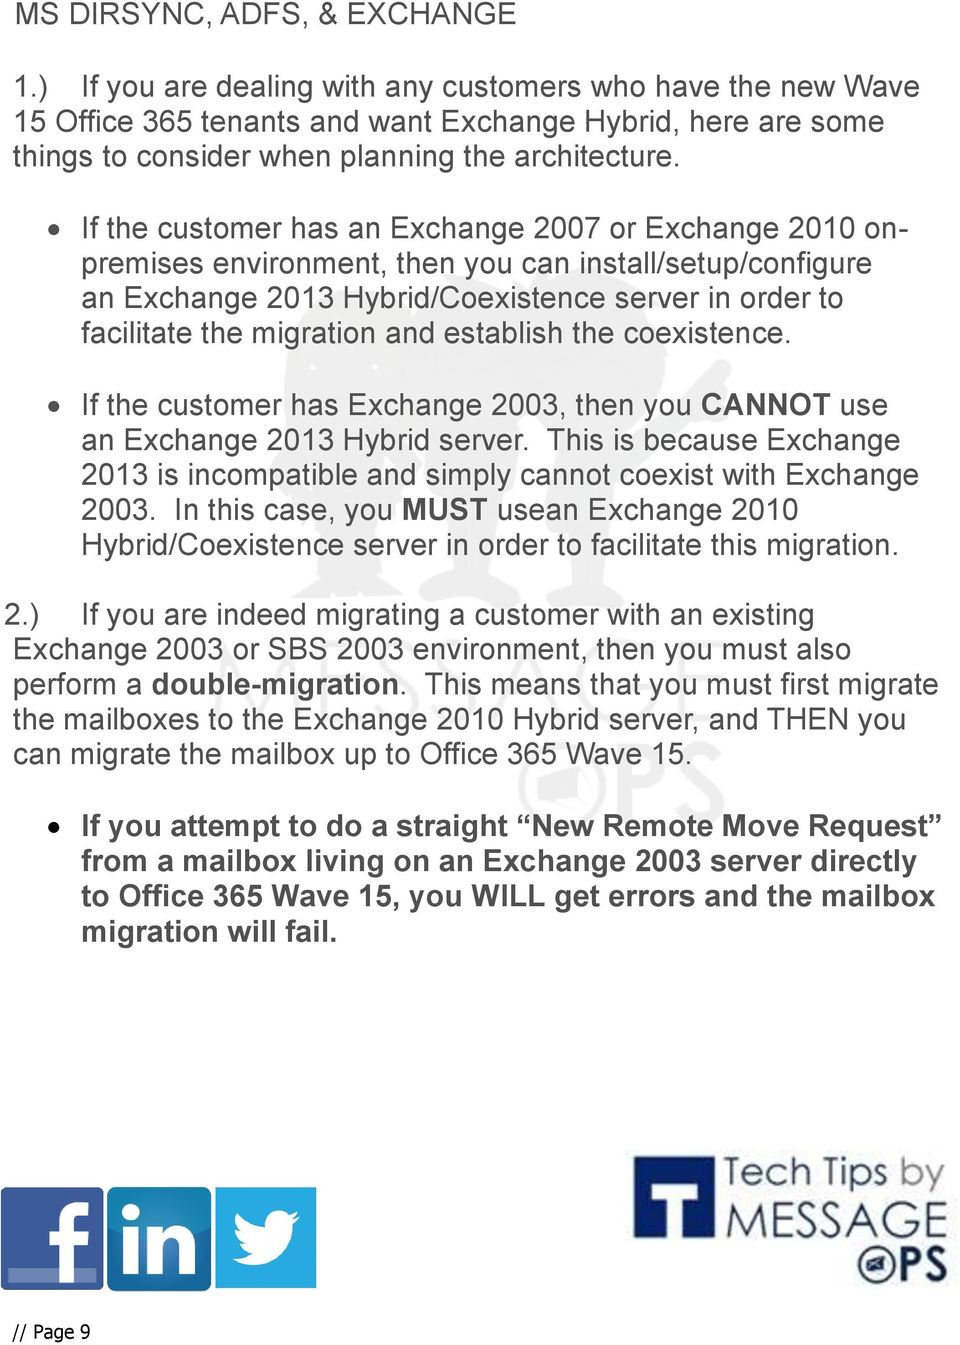 establish the coexistence. If the customer has Exchange 2003, then you CANNOT use an Exchange 2013 Hybrid server.